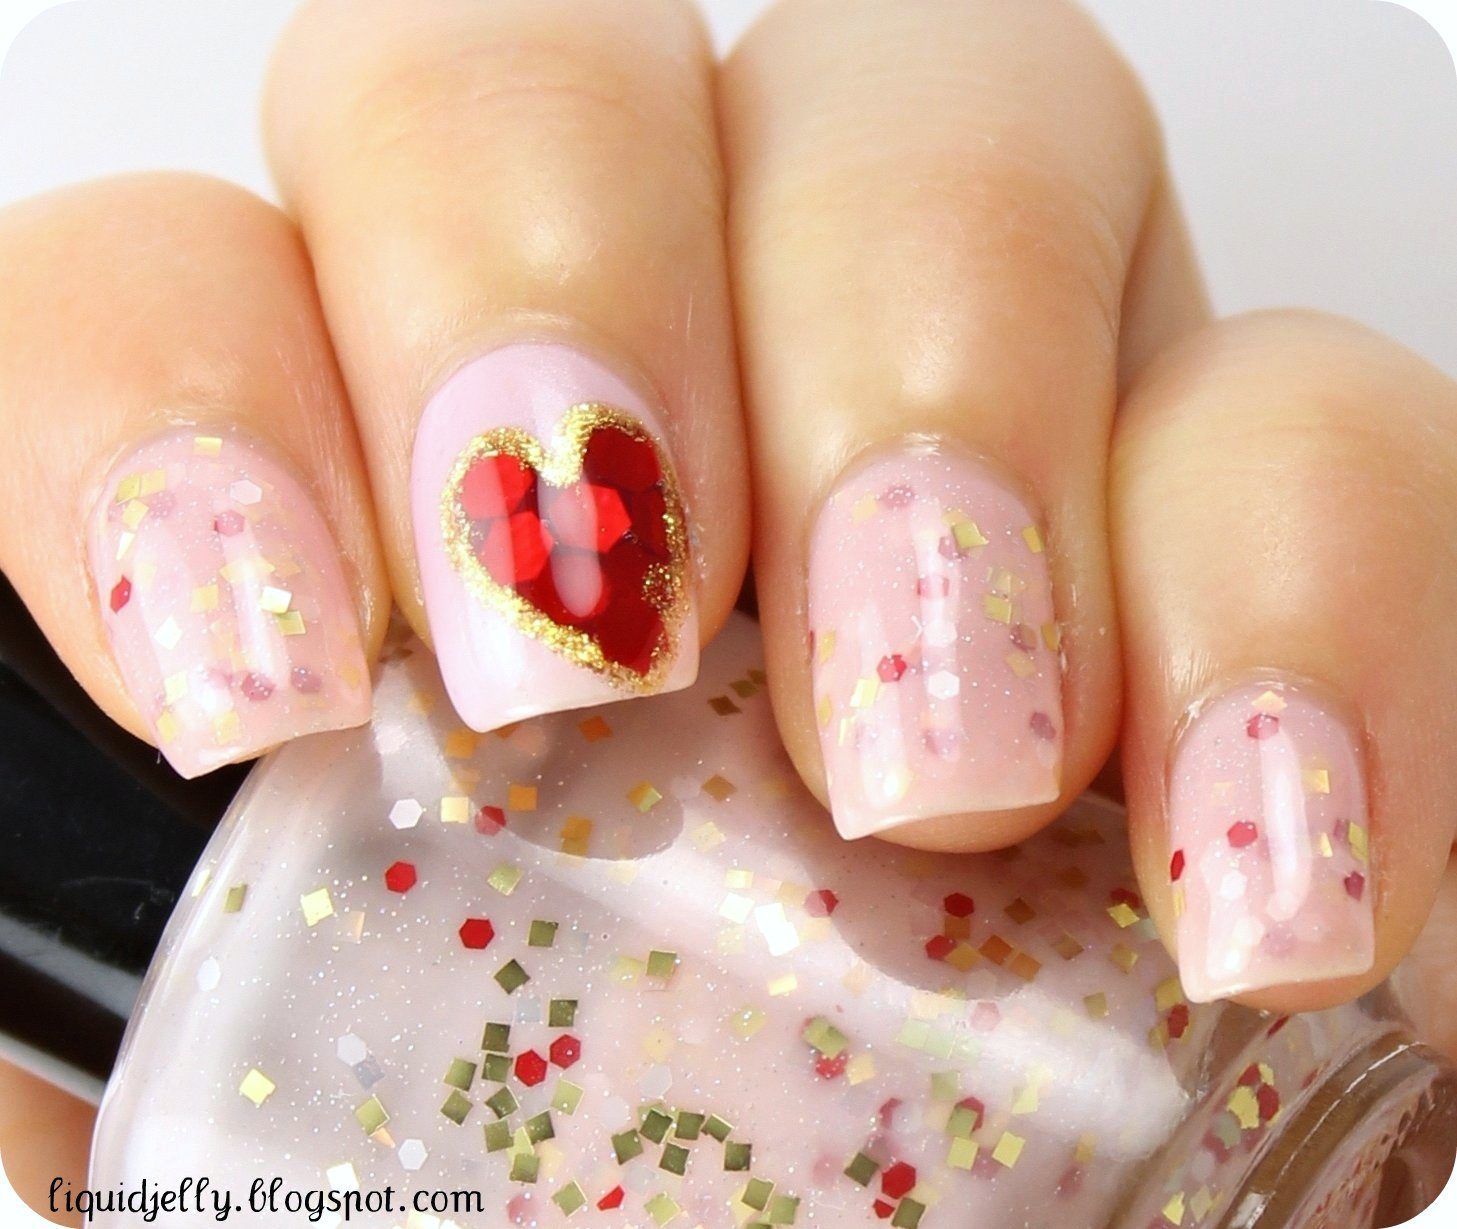 Liquid Jelly: VDAY: Sequin Heart Nail Art